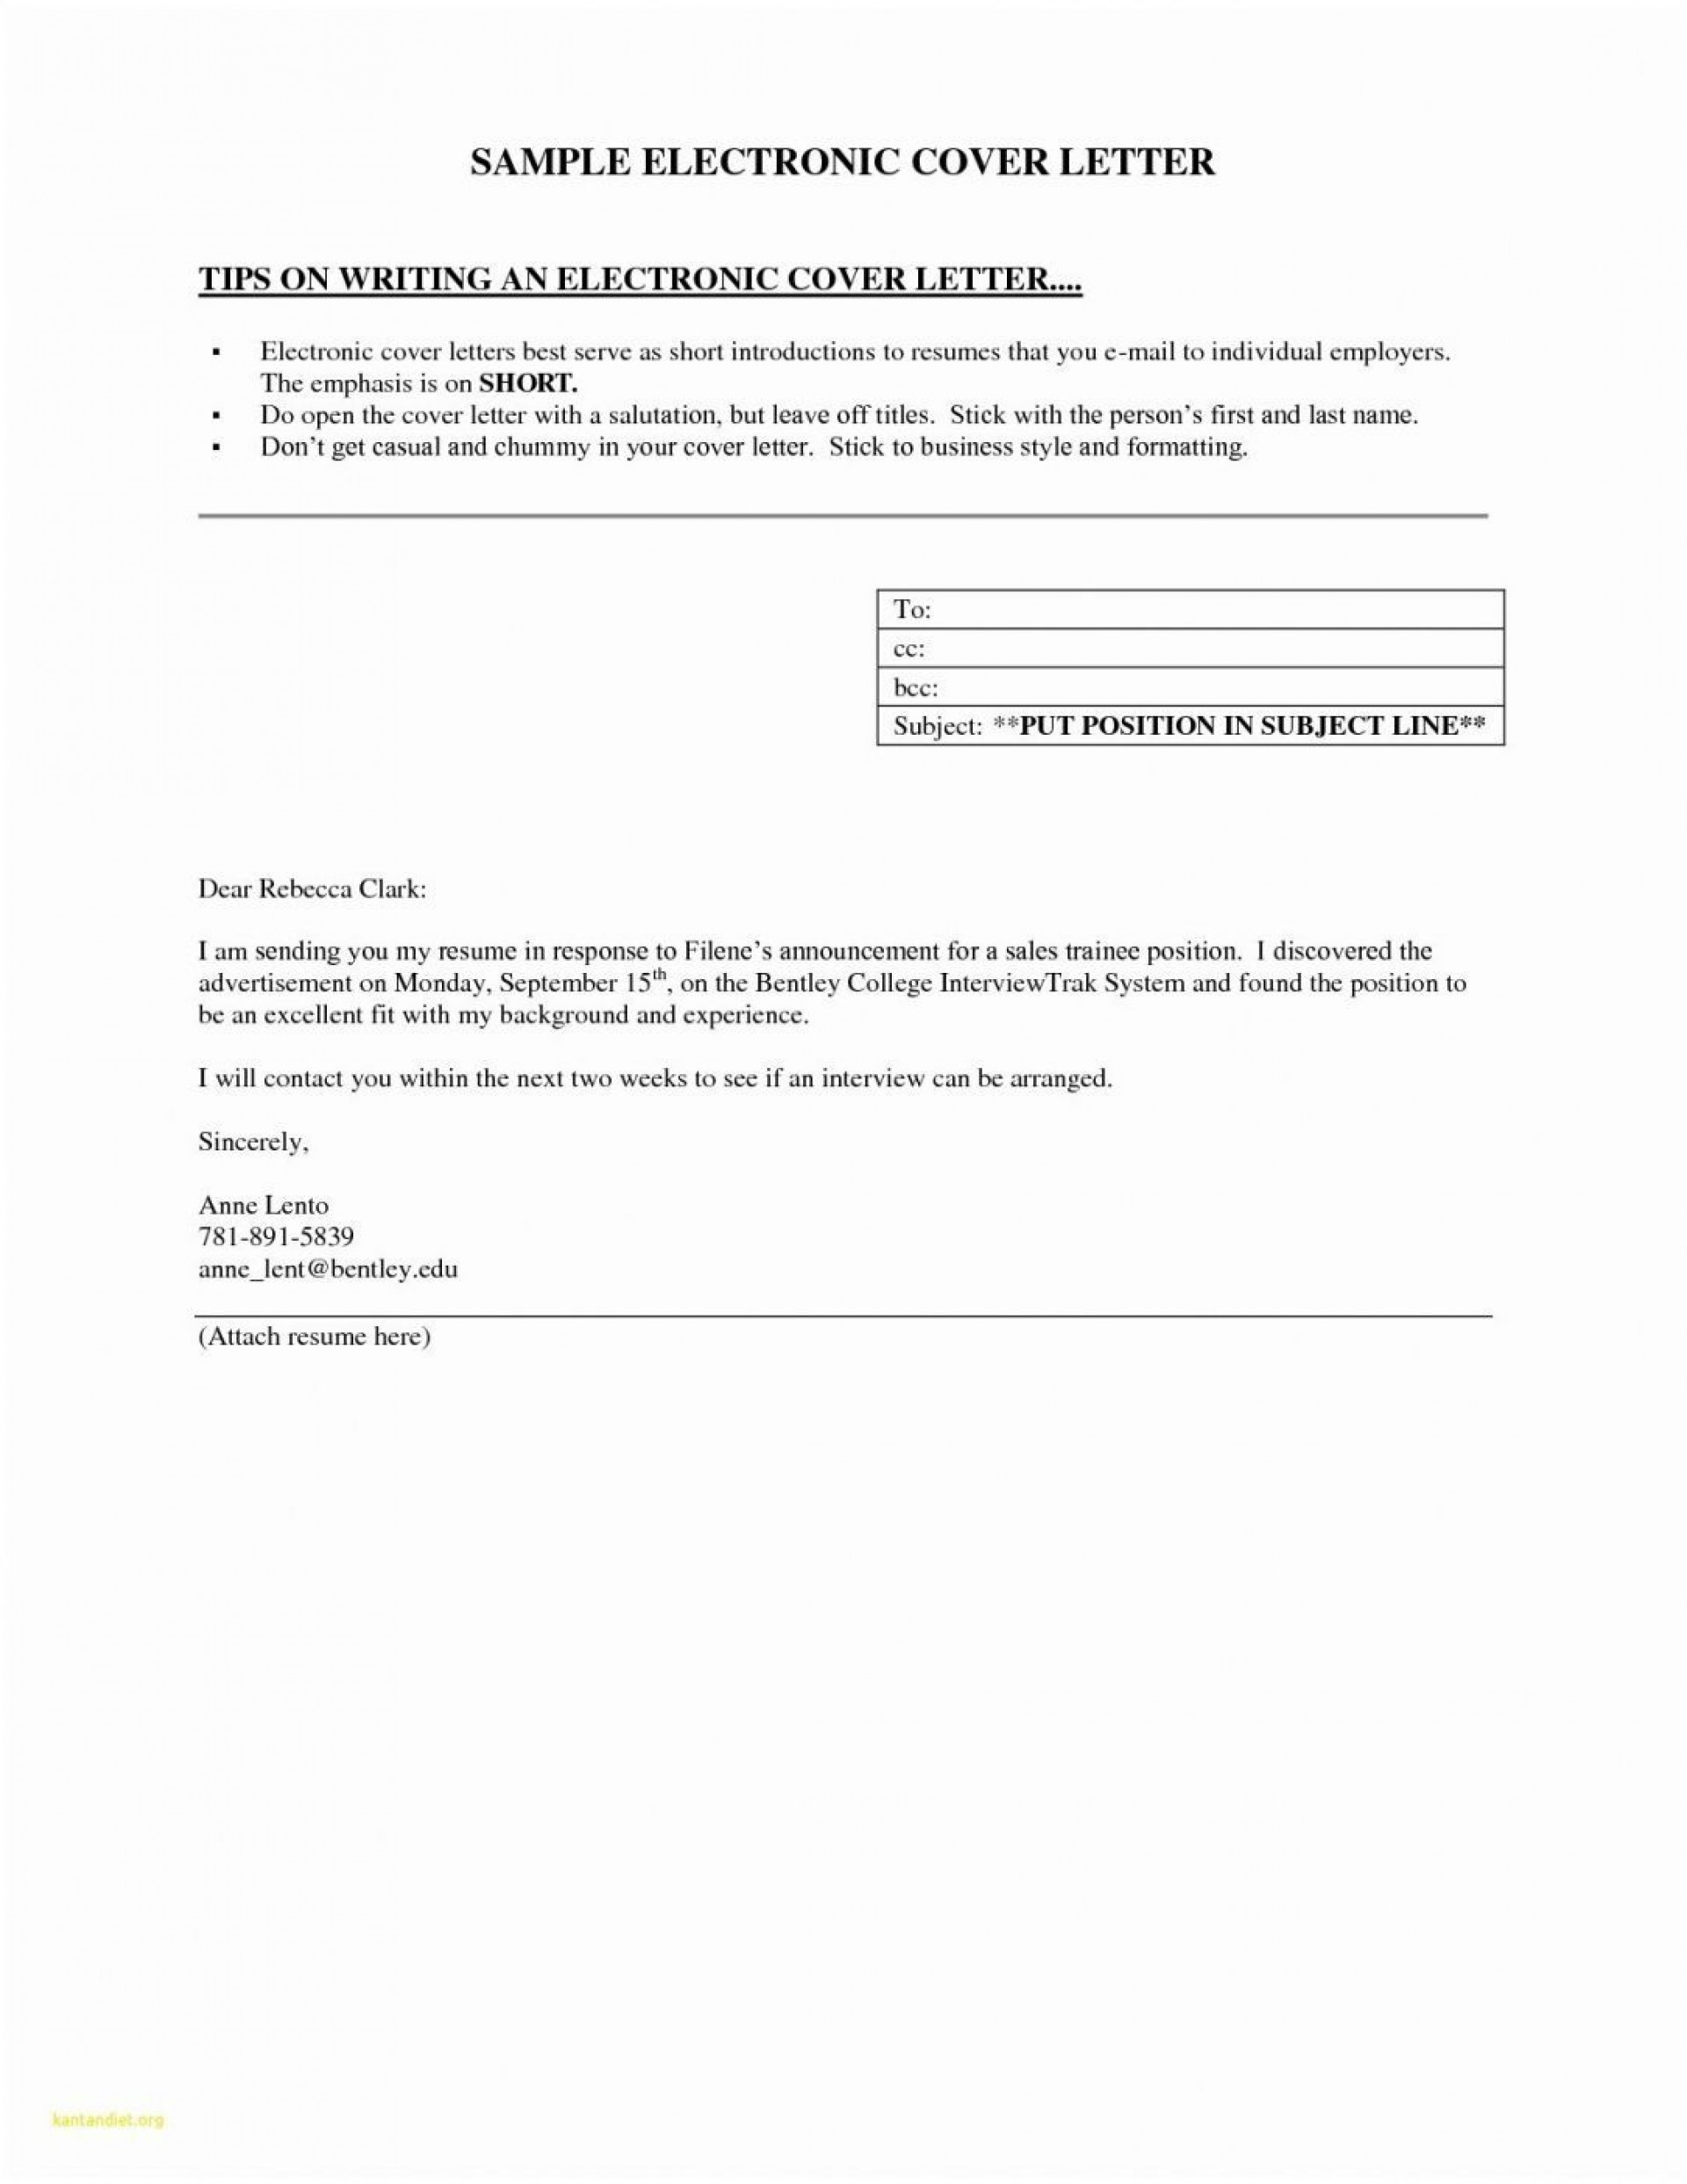 Attachment Email Writing Format Samples